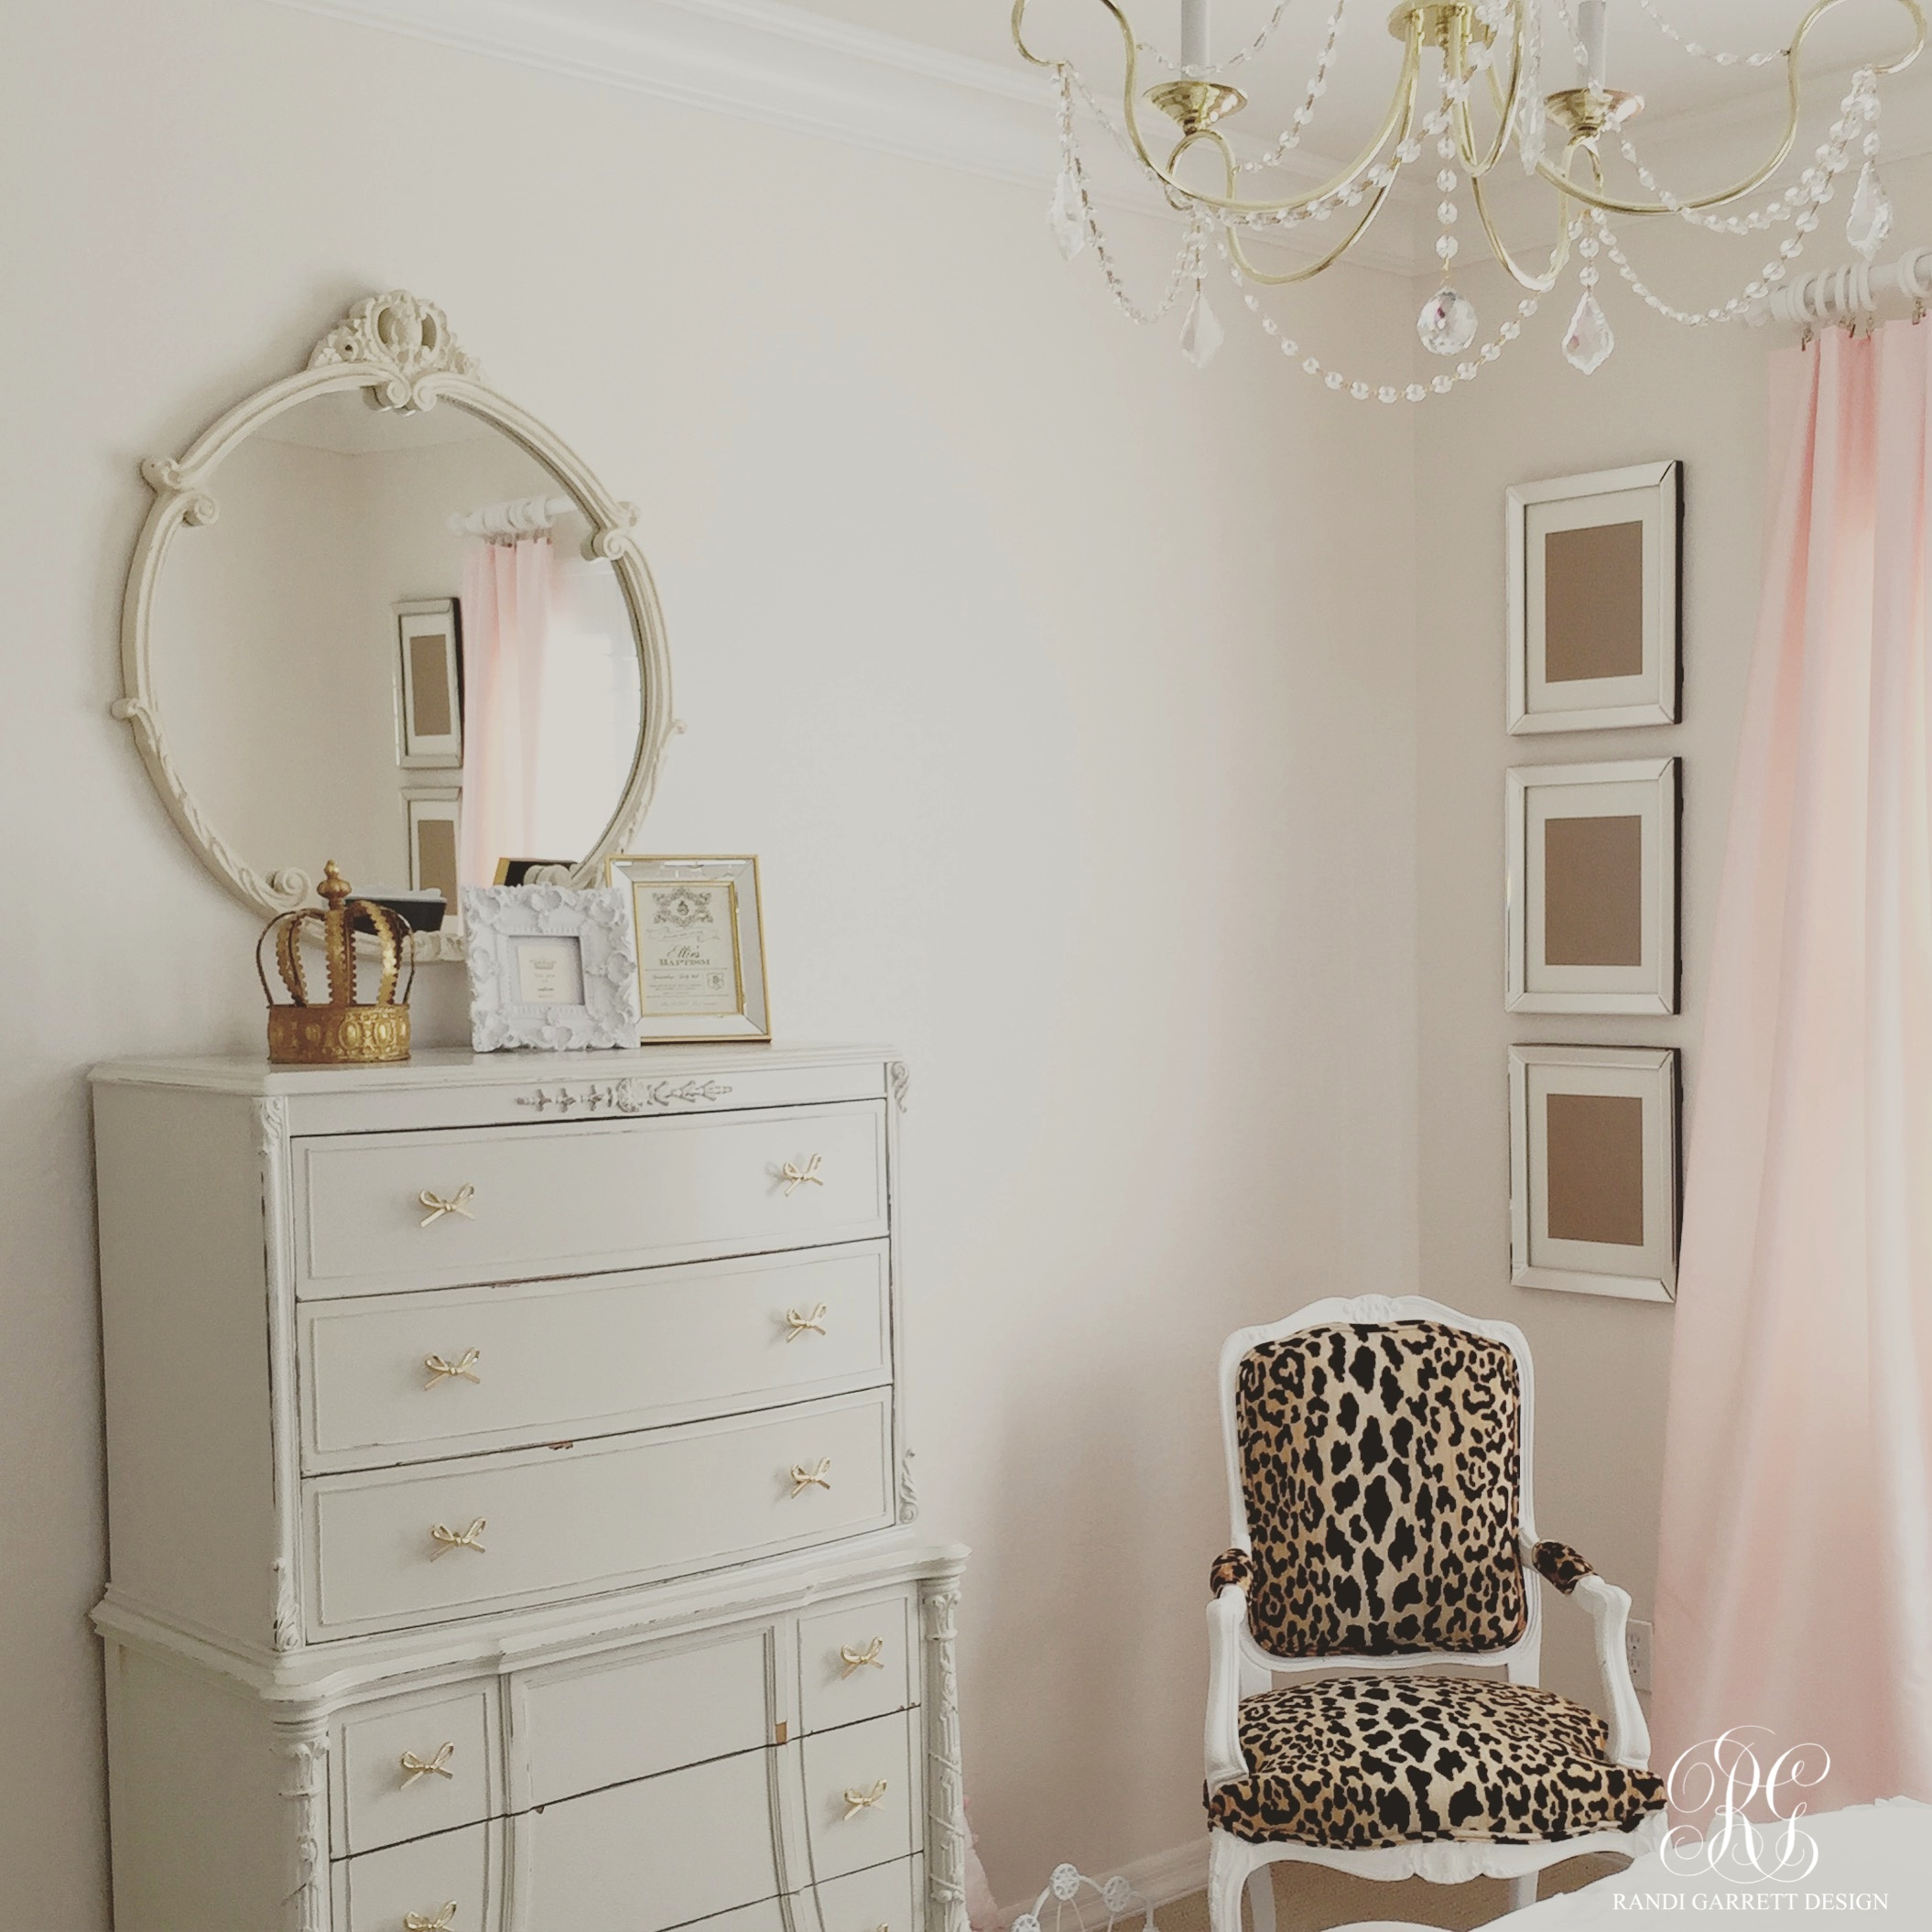 Pink and gold bedroom by Randi Garrett Design with velvet leopard chair